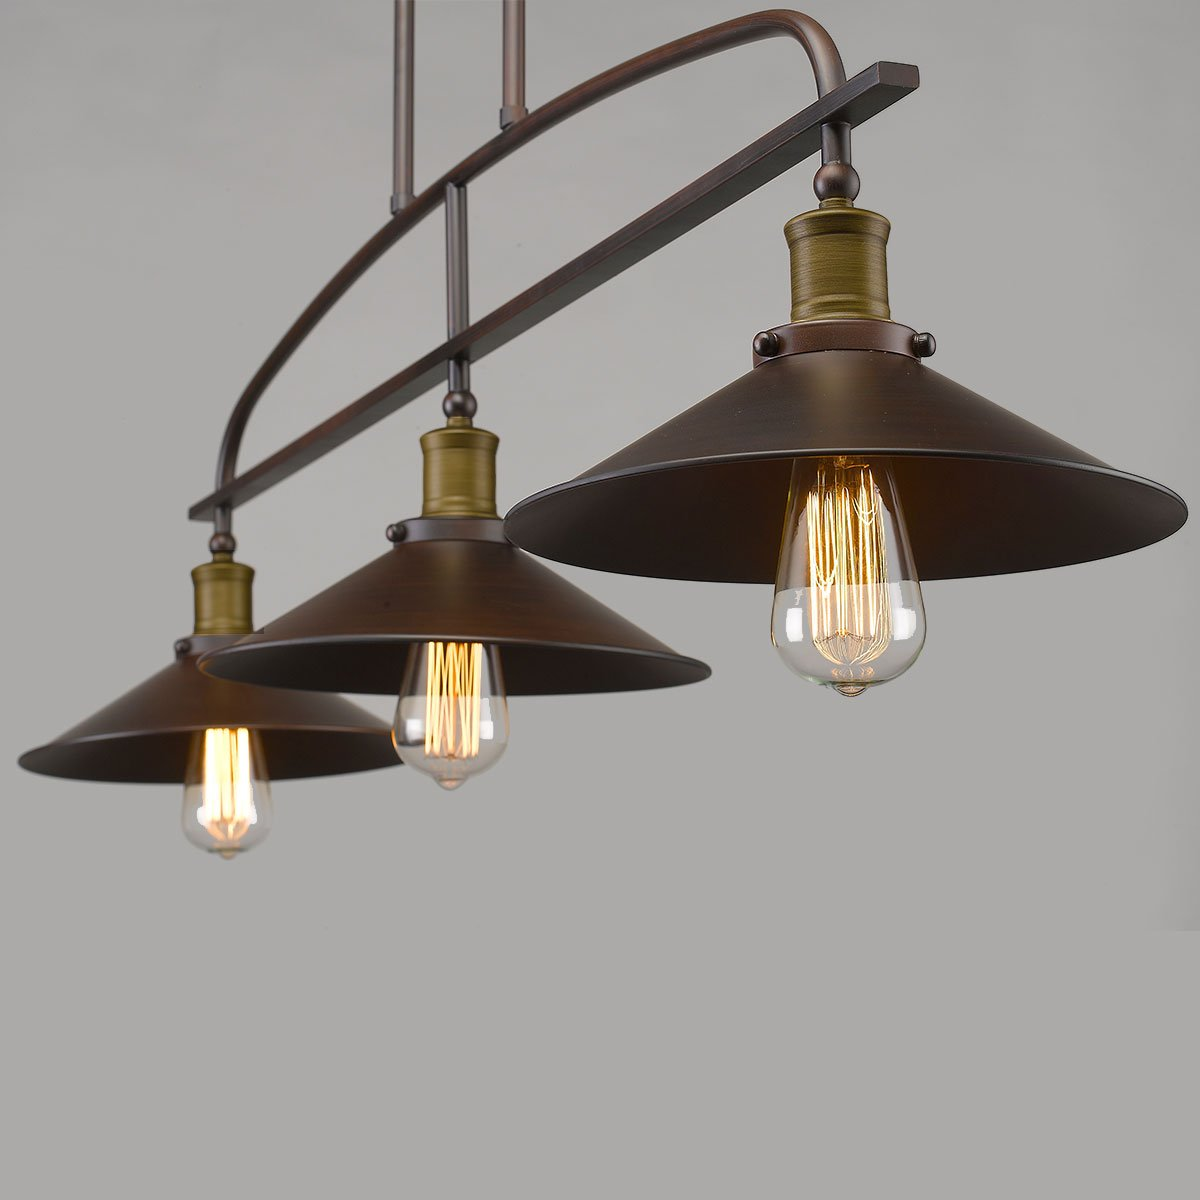 YOBO Lighting Antique Kitchen Island Pendant 3-light Metal Ceiling Chandelier - - Amazon.com : vintage pendant lights - azcodes.com